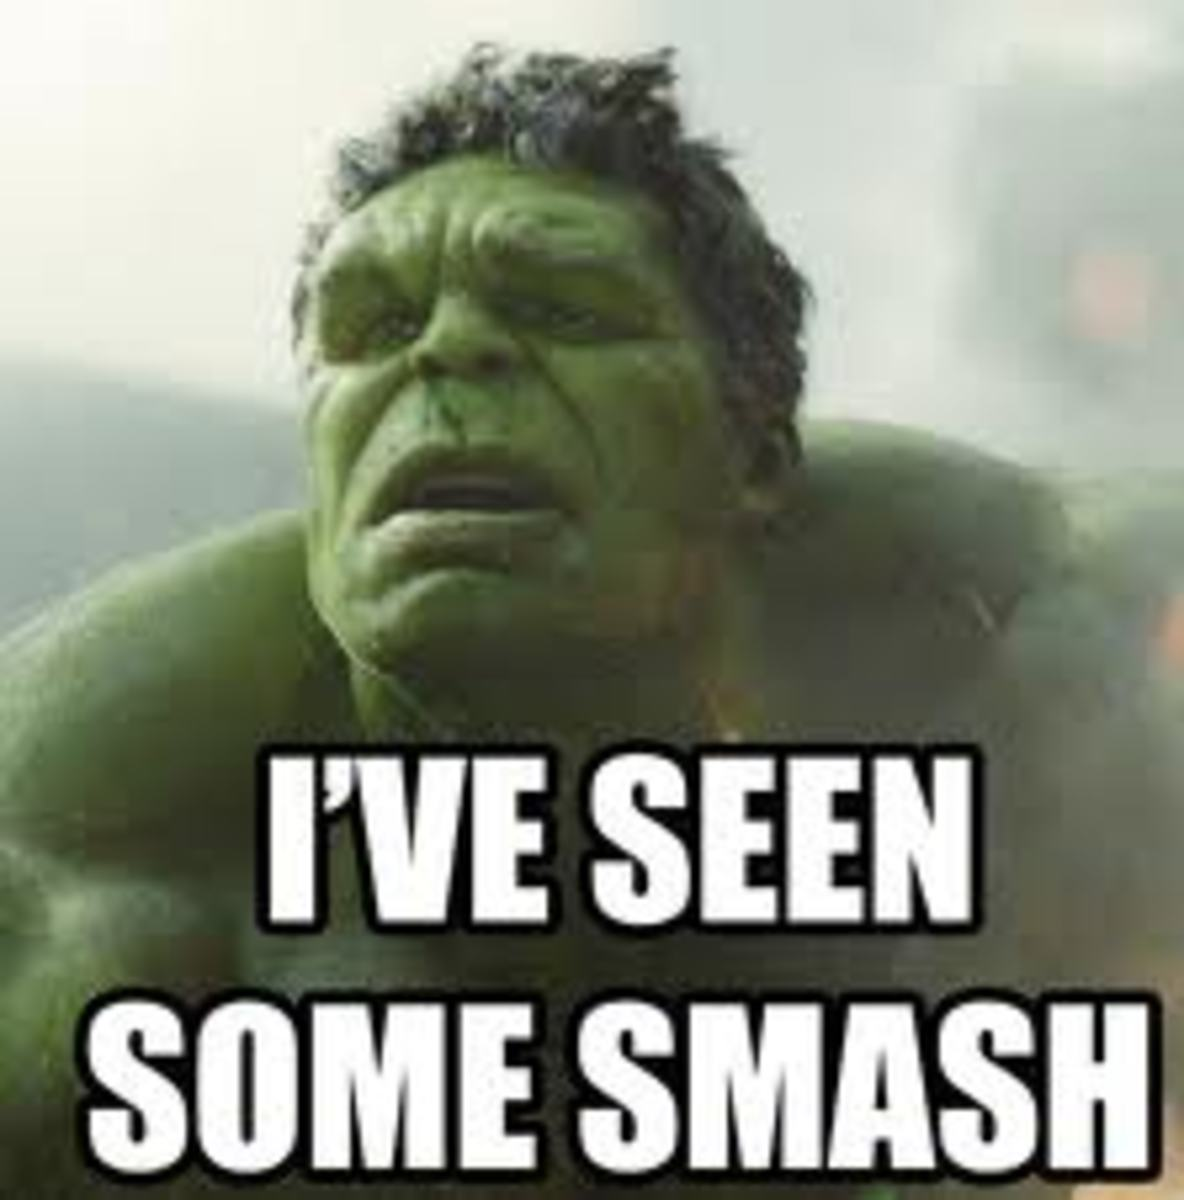 Hulk has seen some smash